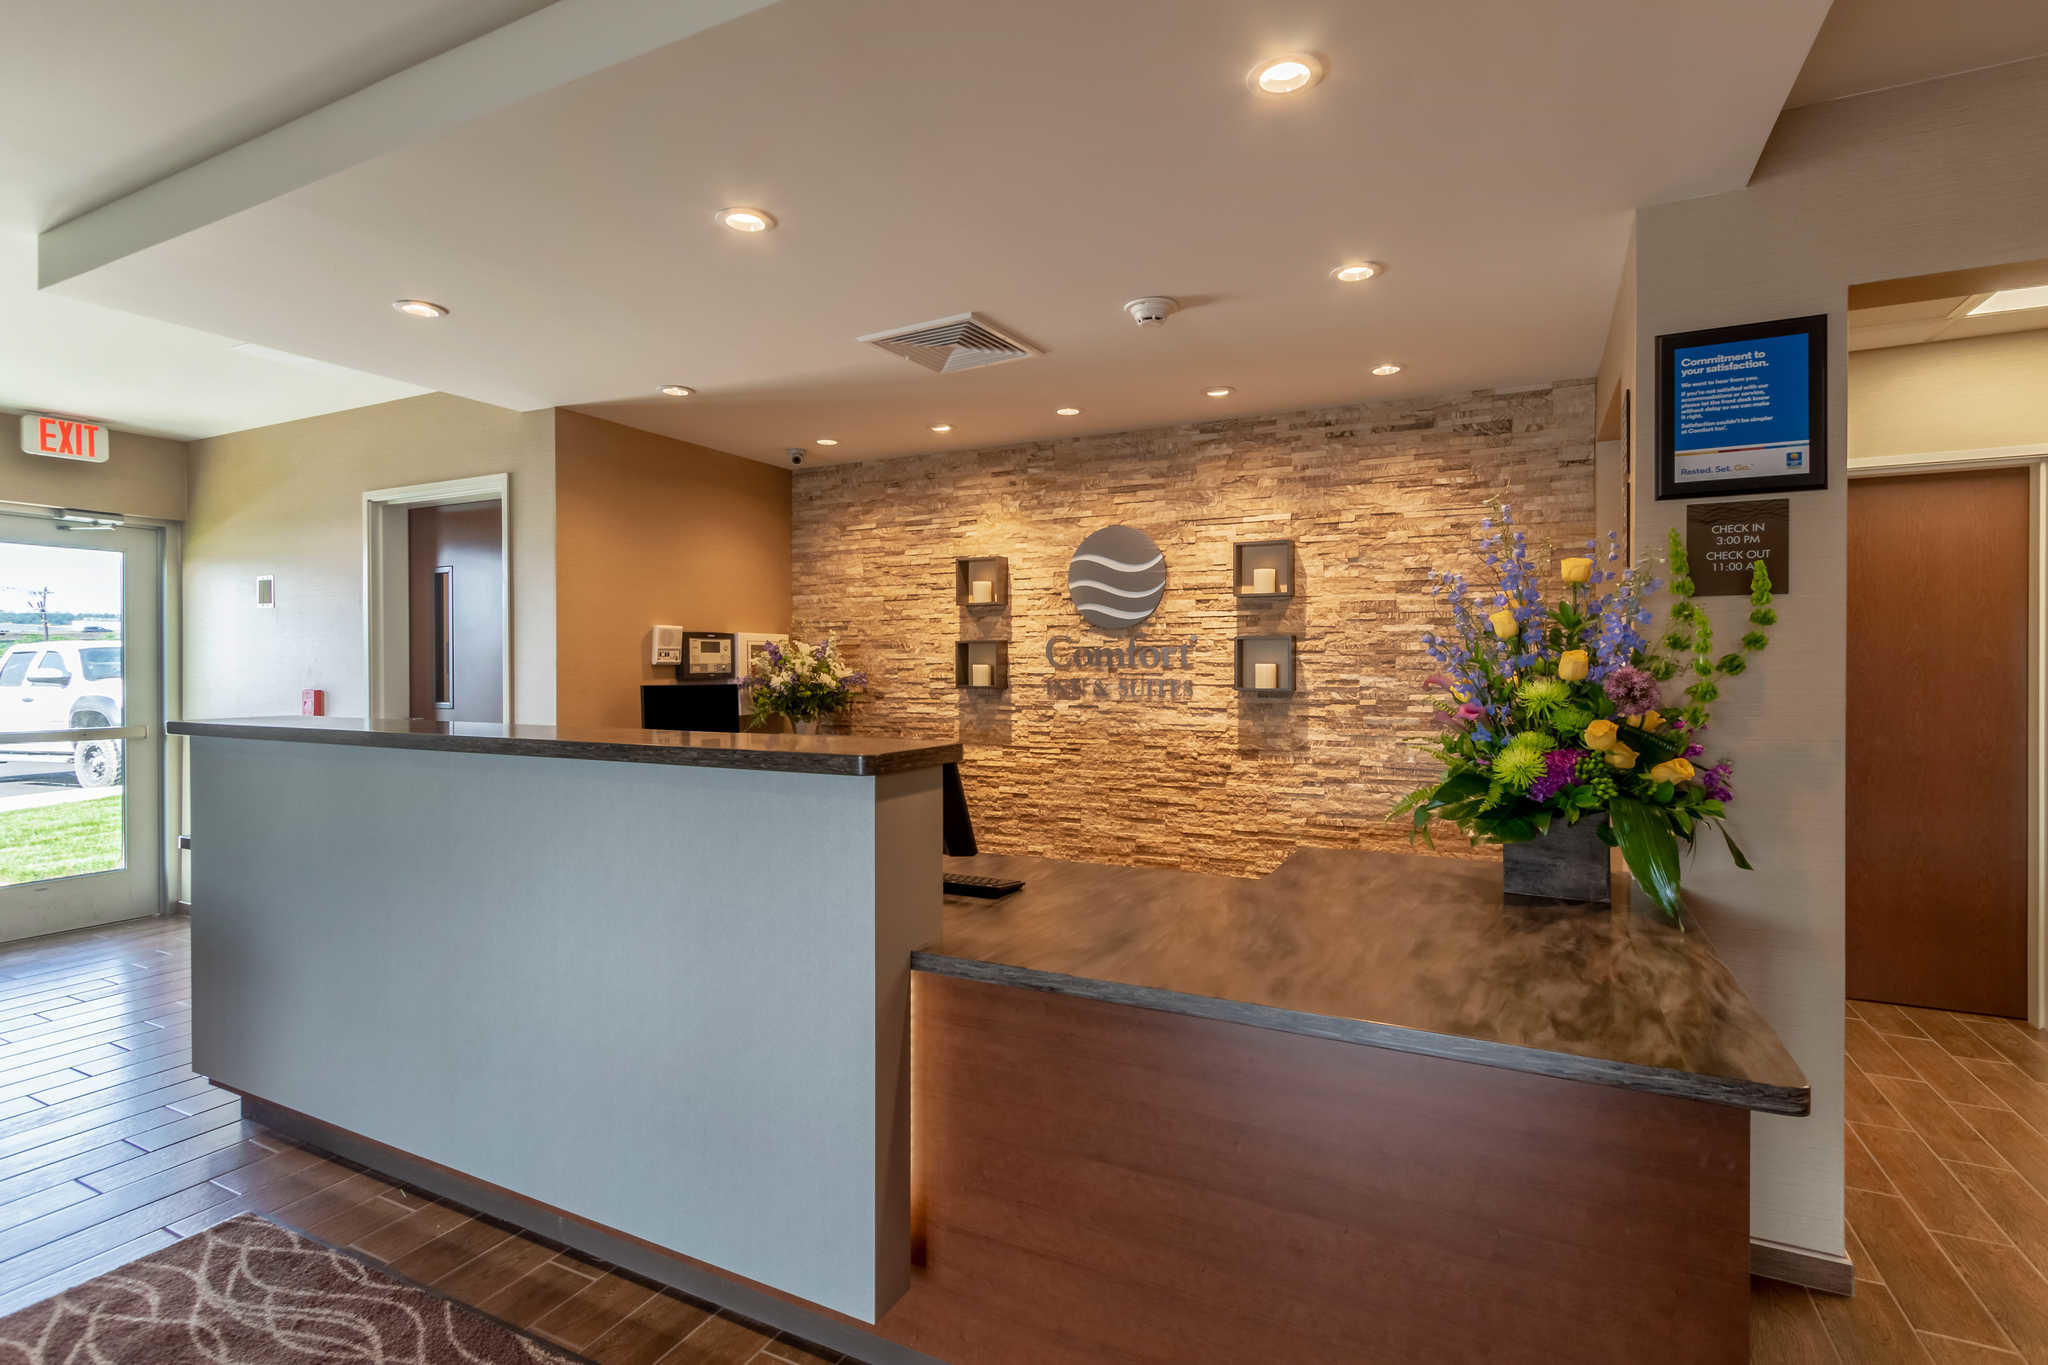 Comfort Inn & Suites - Harrisburg Airport - Hershey South image 5